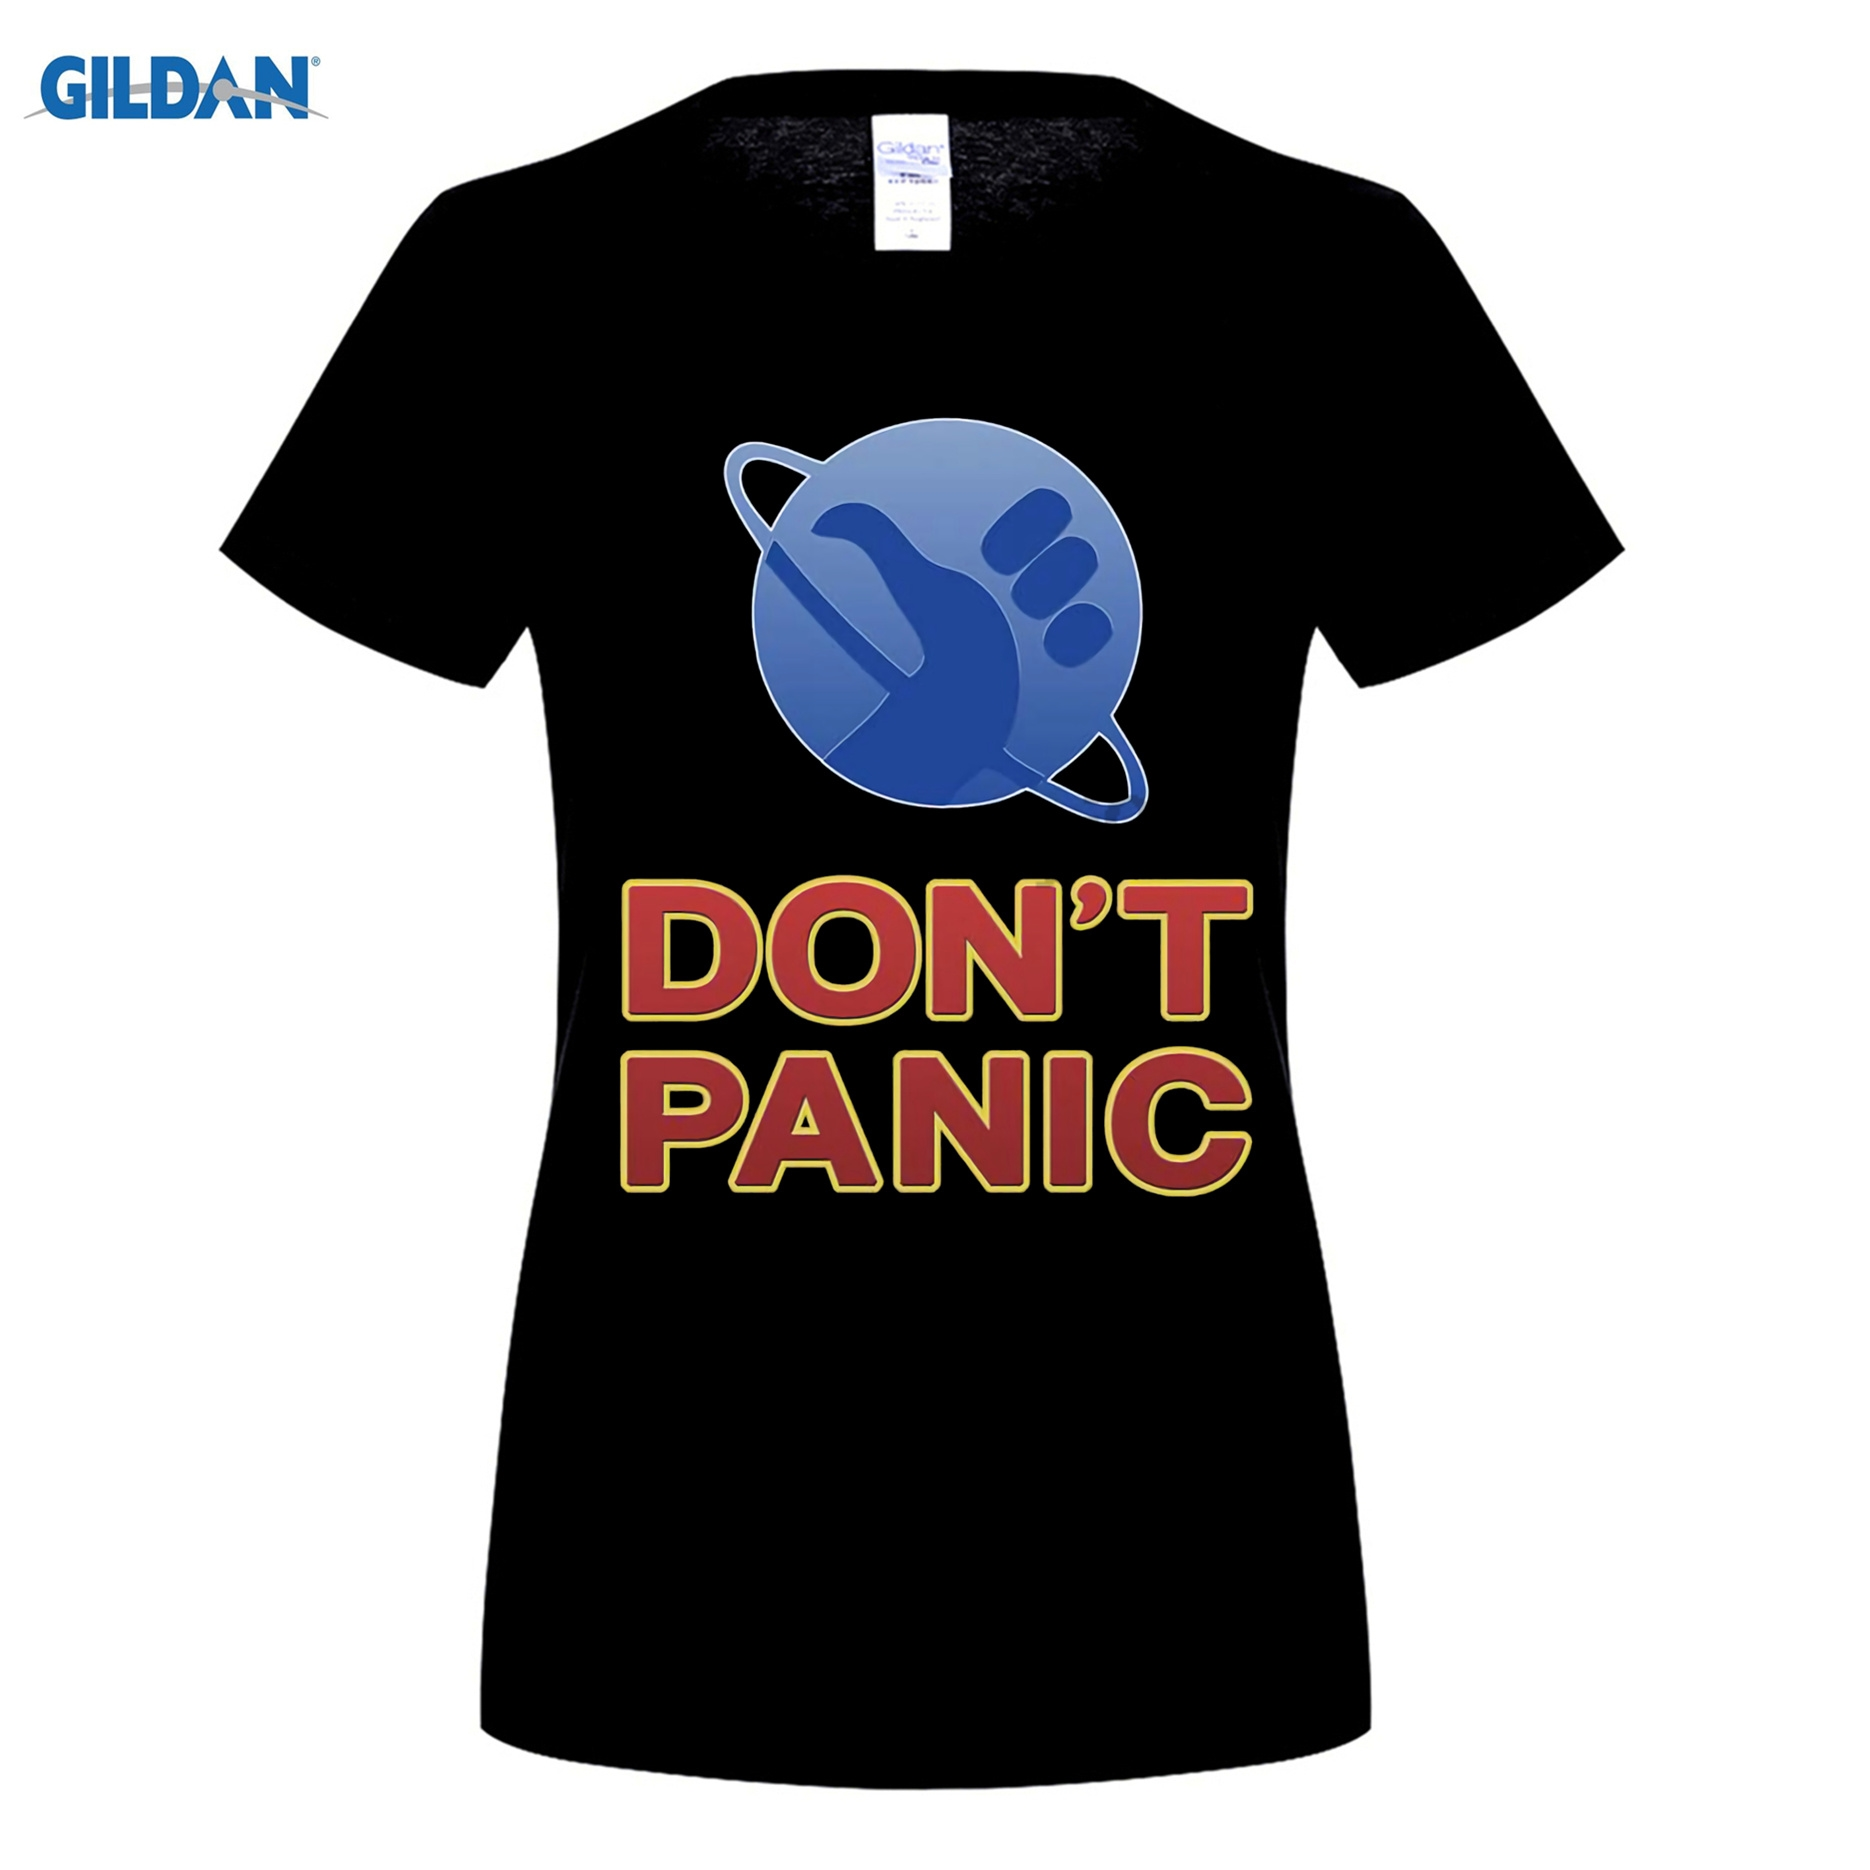 GILDAN 100% cotton O-neck printed T-shirt Hitchhikers Guide To The Galaxy T Shirt Dont Panic for women